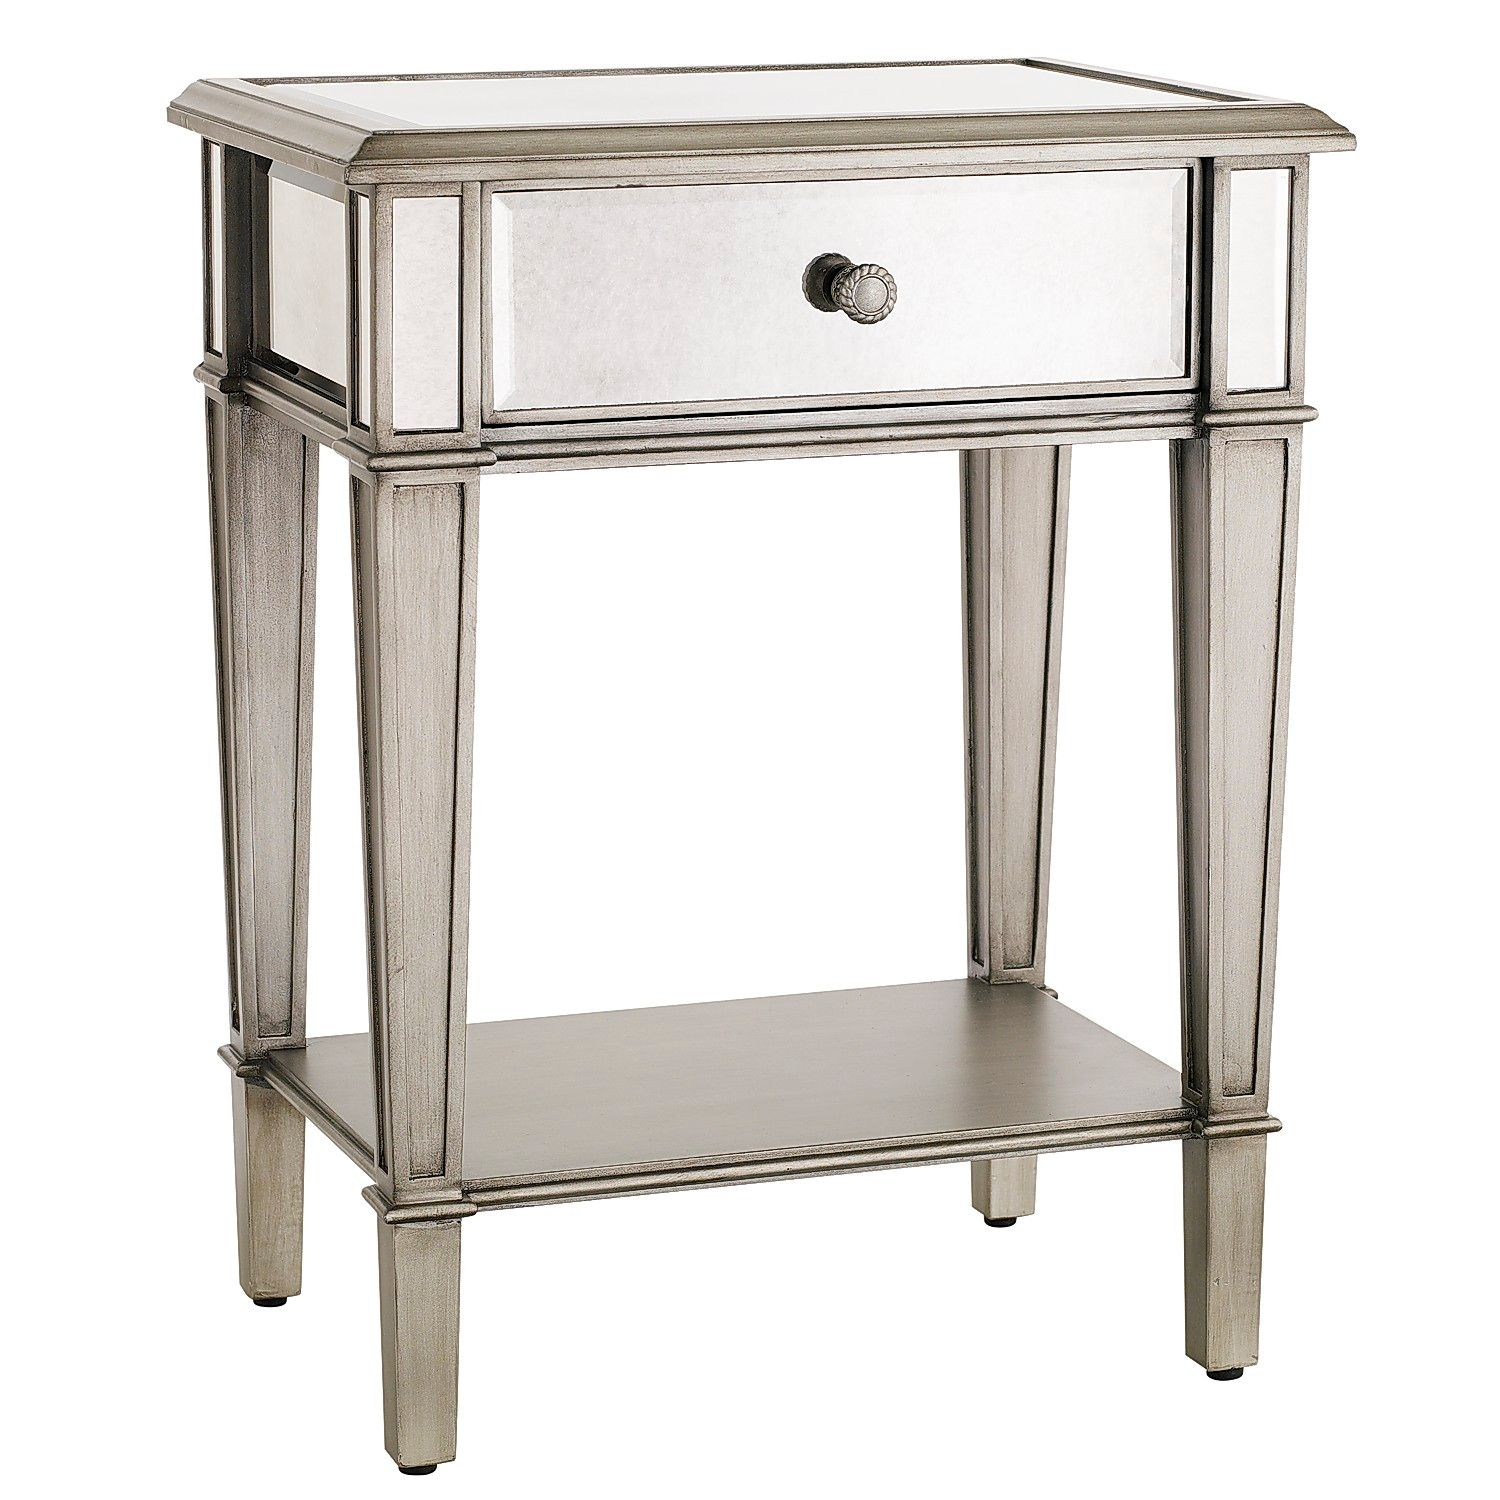 hayworth mirrored silver nightstand pier imports accent table marble topped pedestal side tall skinny bronze spray paint upcycled cool retro furniture antique round oak glass